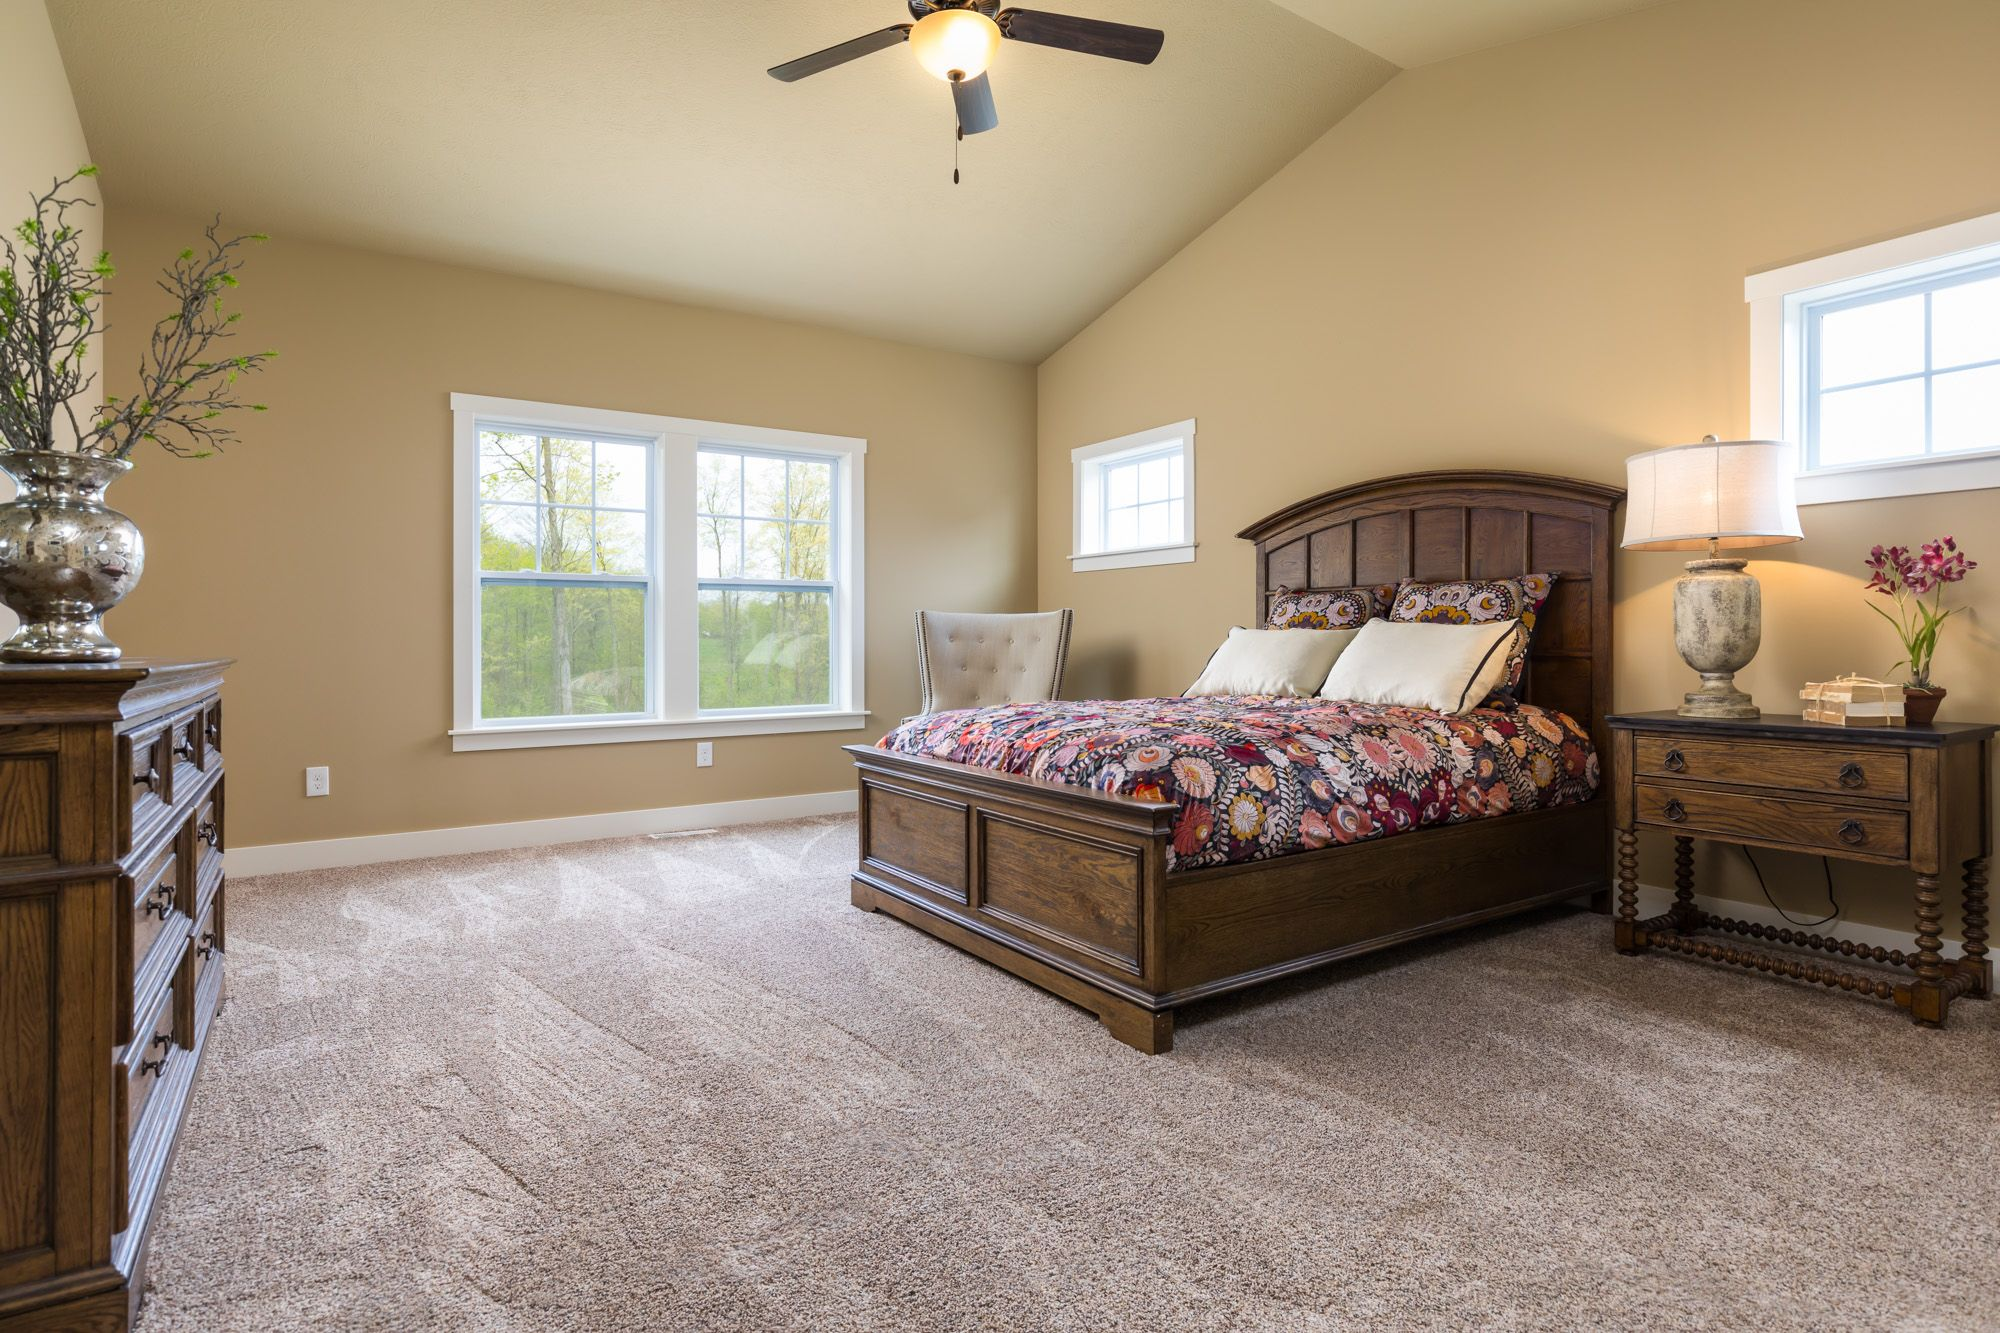 Bedroom featured in the Traditions 2900 V8.2b By Allen Edwin Homes in Ann Arbor, MI